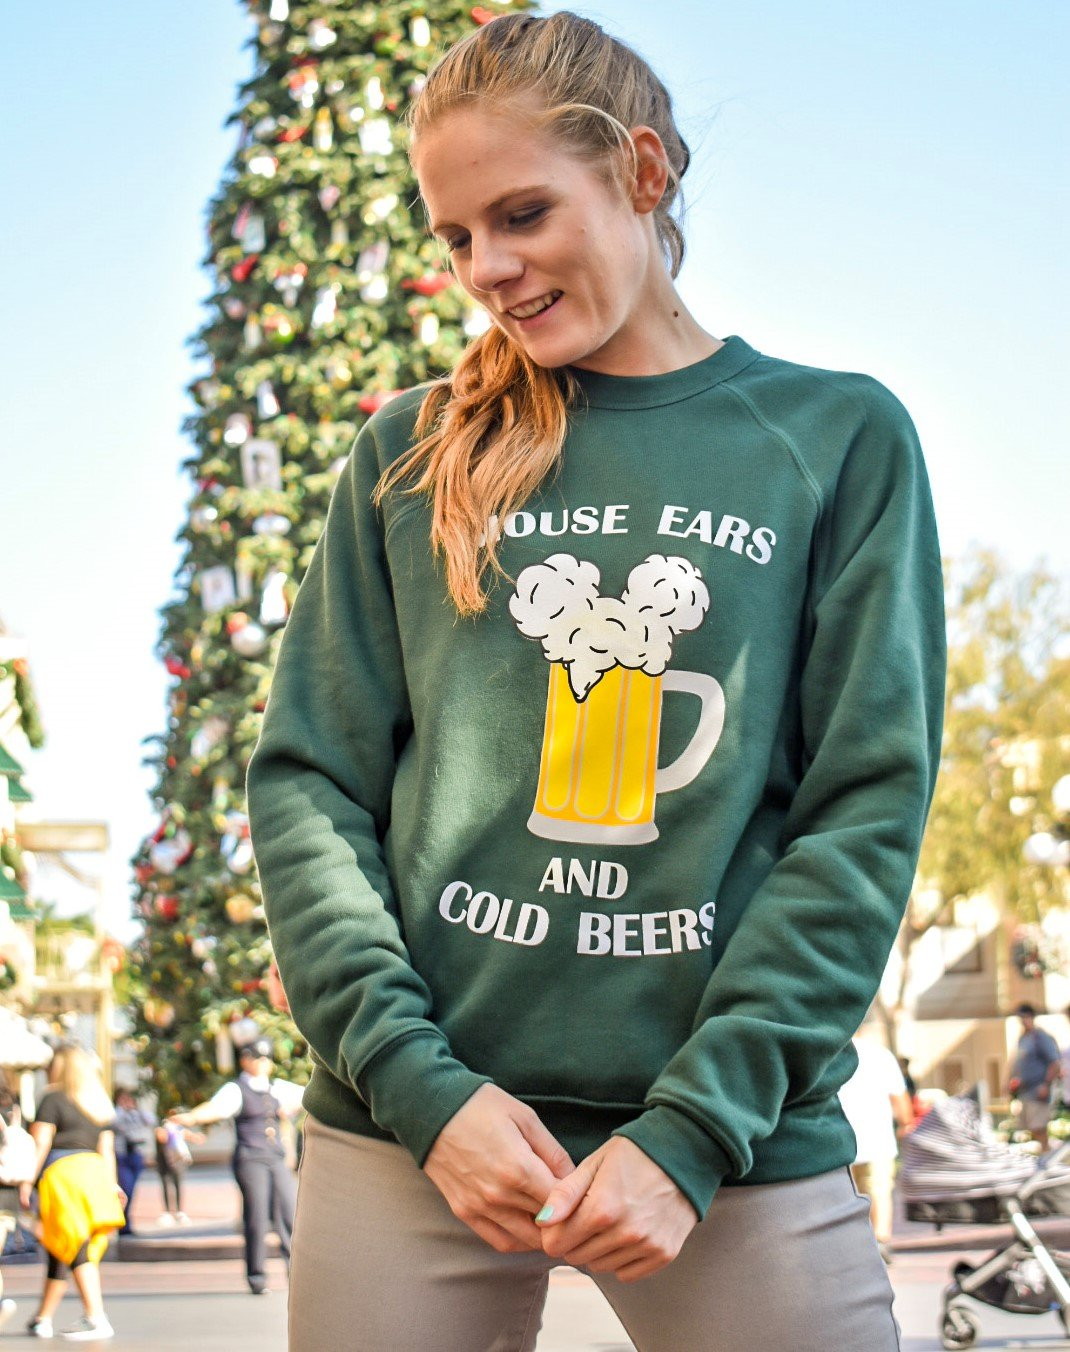 Enjoy mouse ears and cold beers on Main Street USA at Disney with the Christmas tree. This fleece sweatshirt will keep you warm this winter!